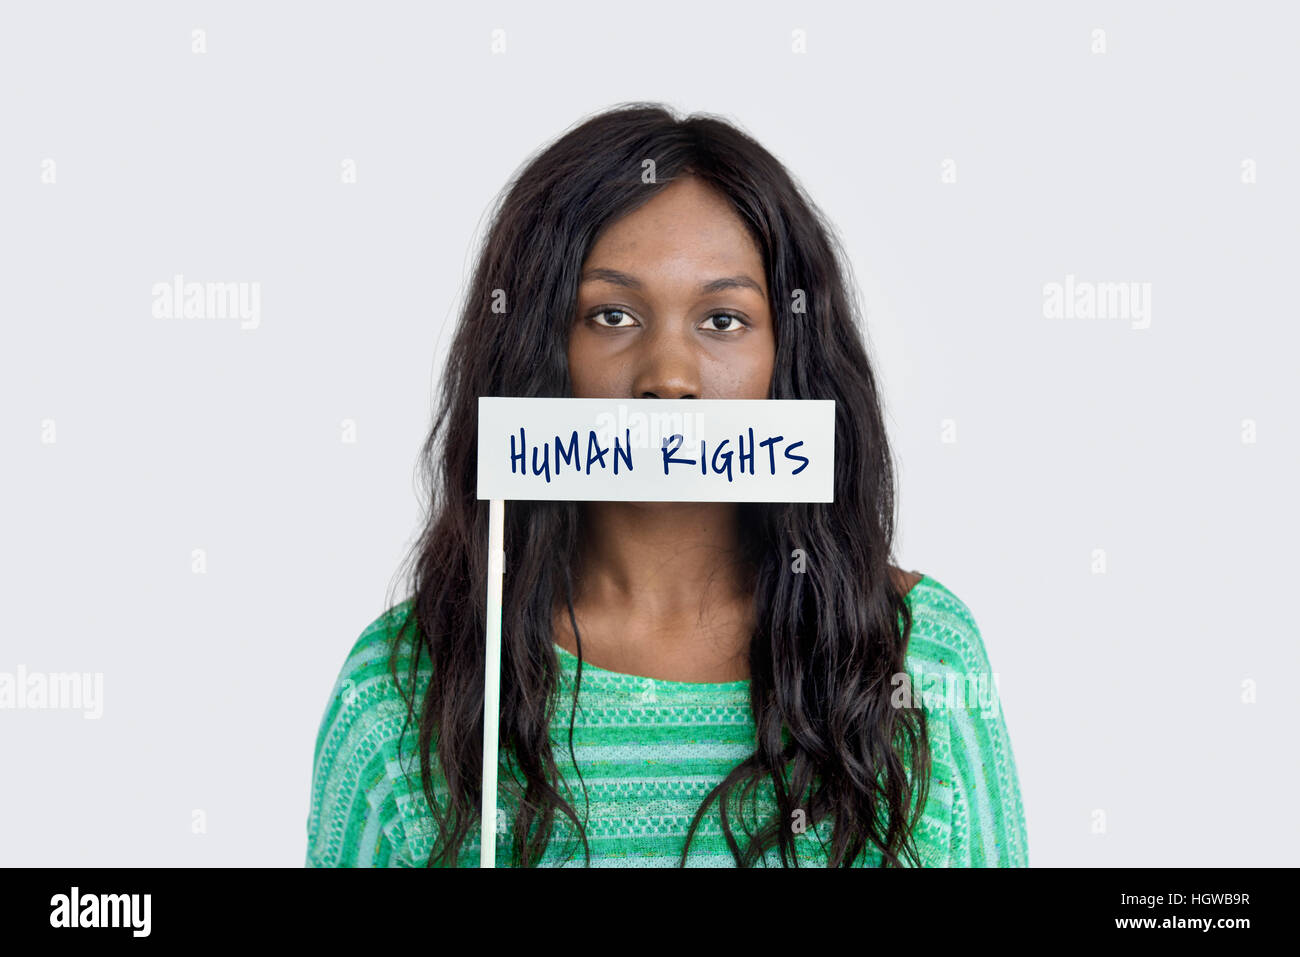 Human Rights Immunity Benefit Concept - Stock Image